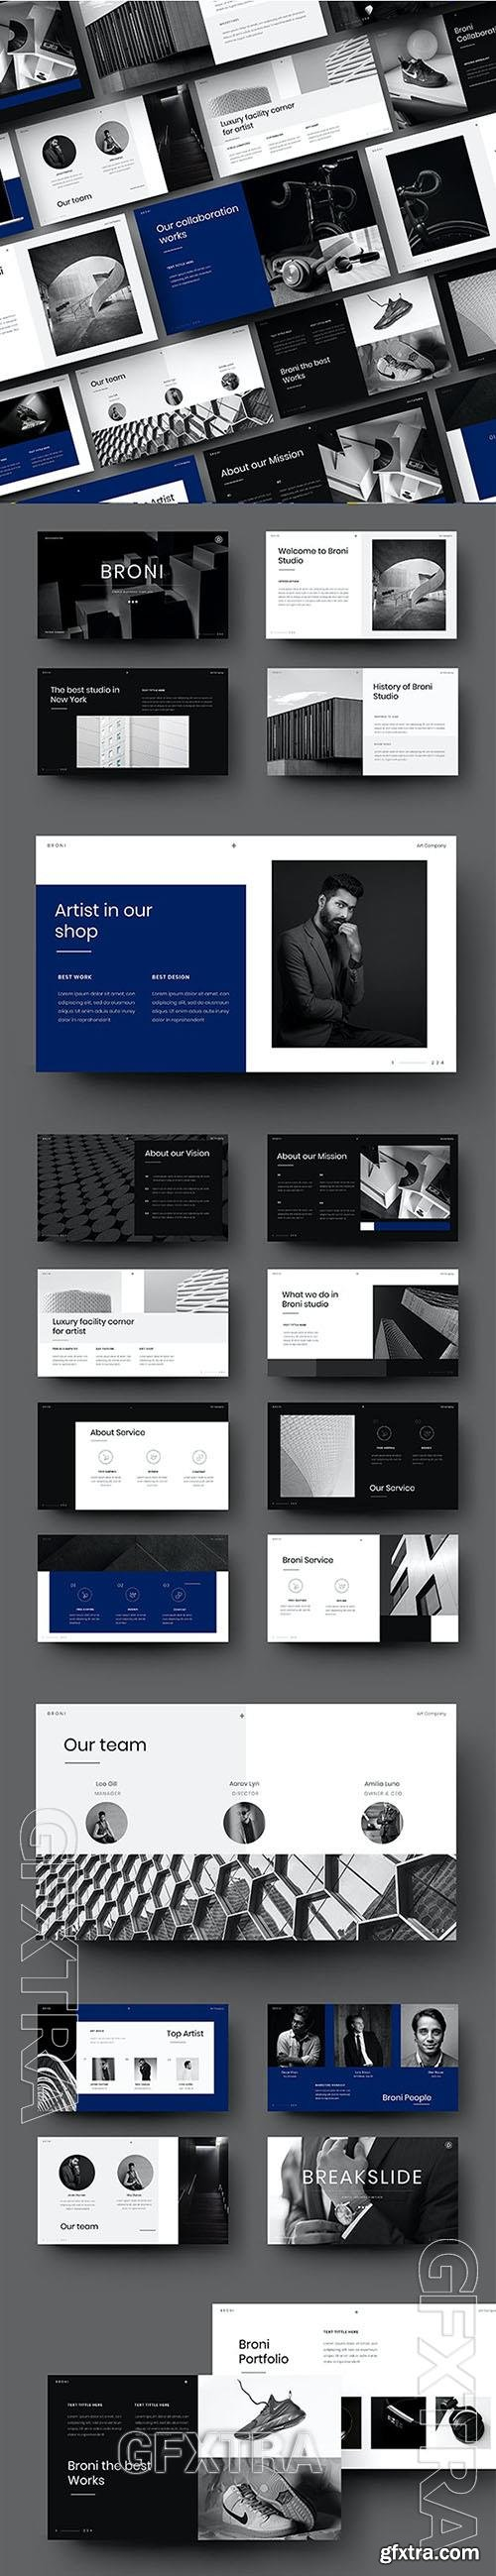 Broni - Business Powerpoint, Keynote and Google Slides Template